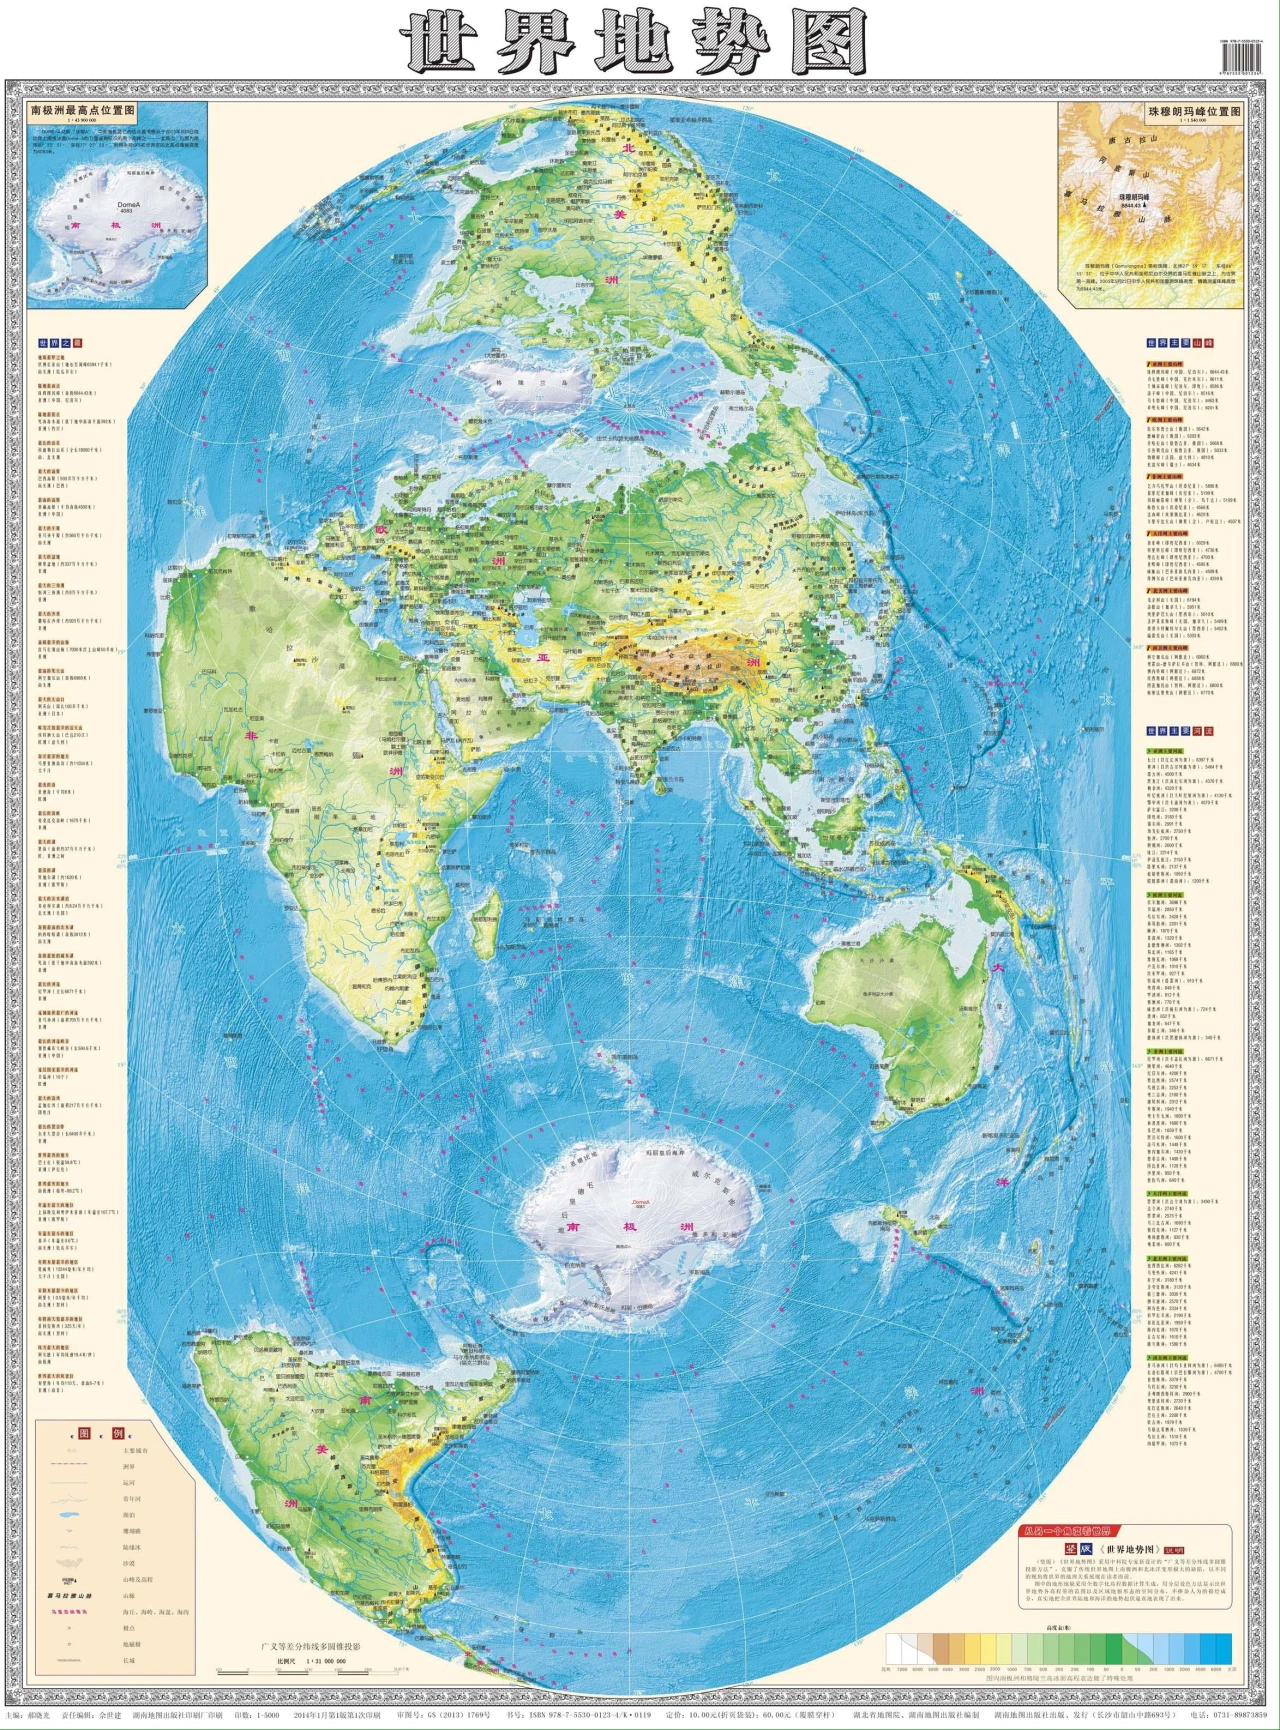 Chinese vertical world map, April 2017 © Hao Xiaoguang